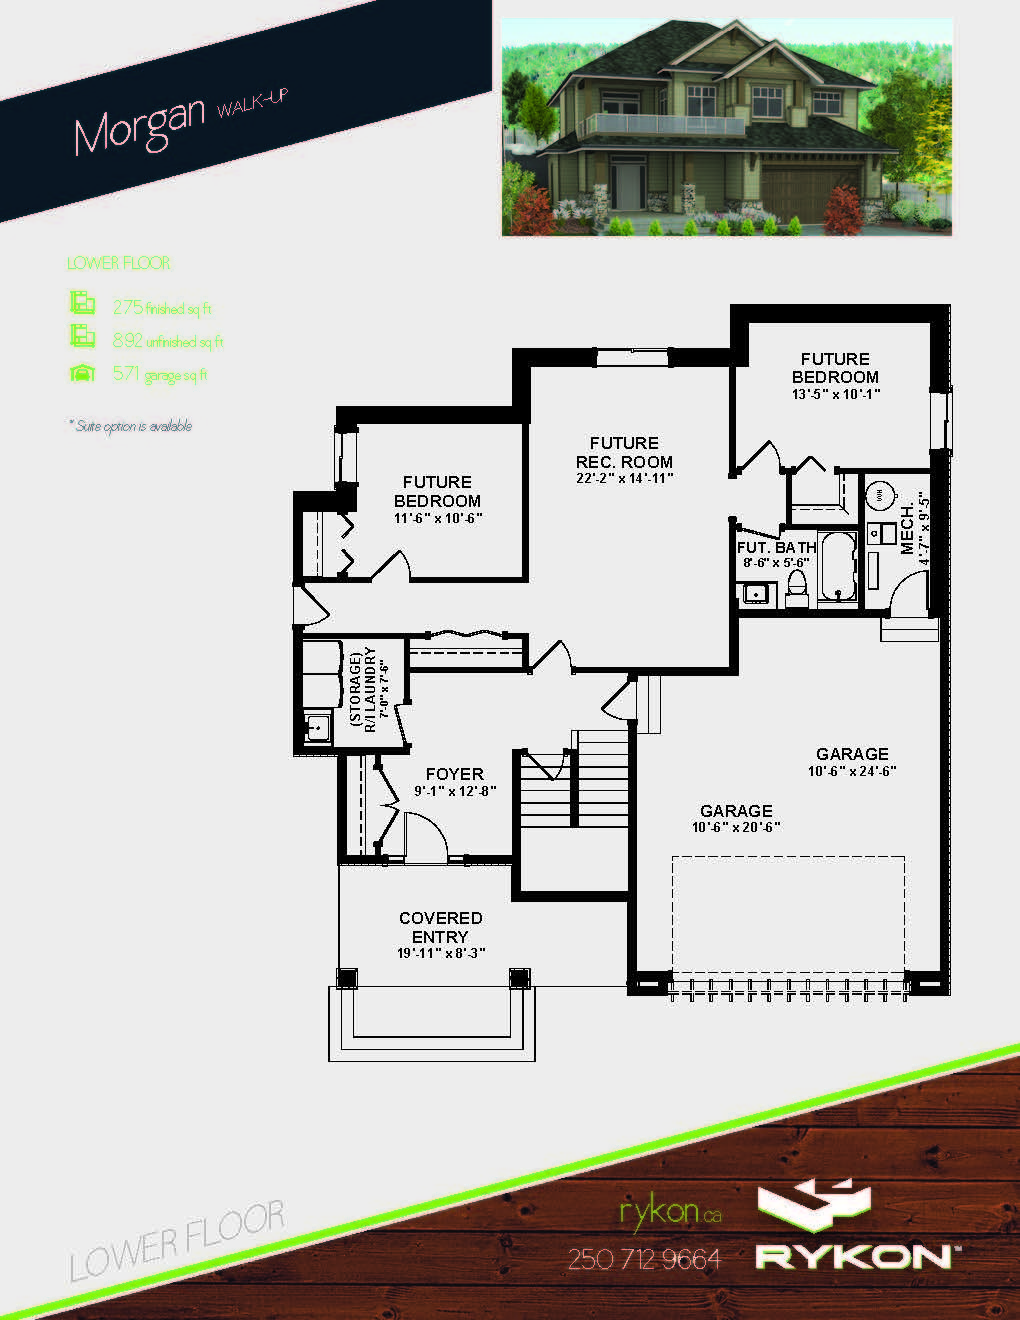 MRH - Morgan Page 2 Floorplan